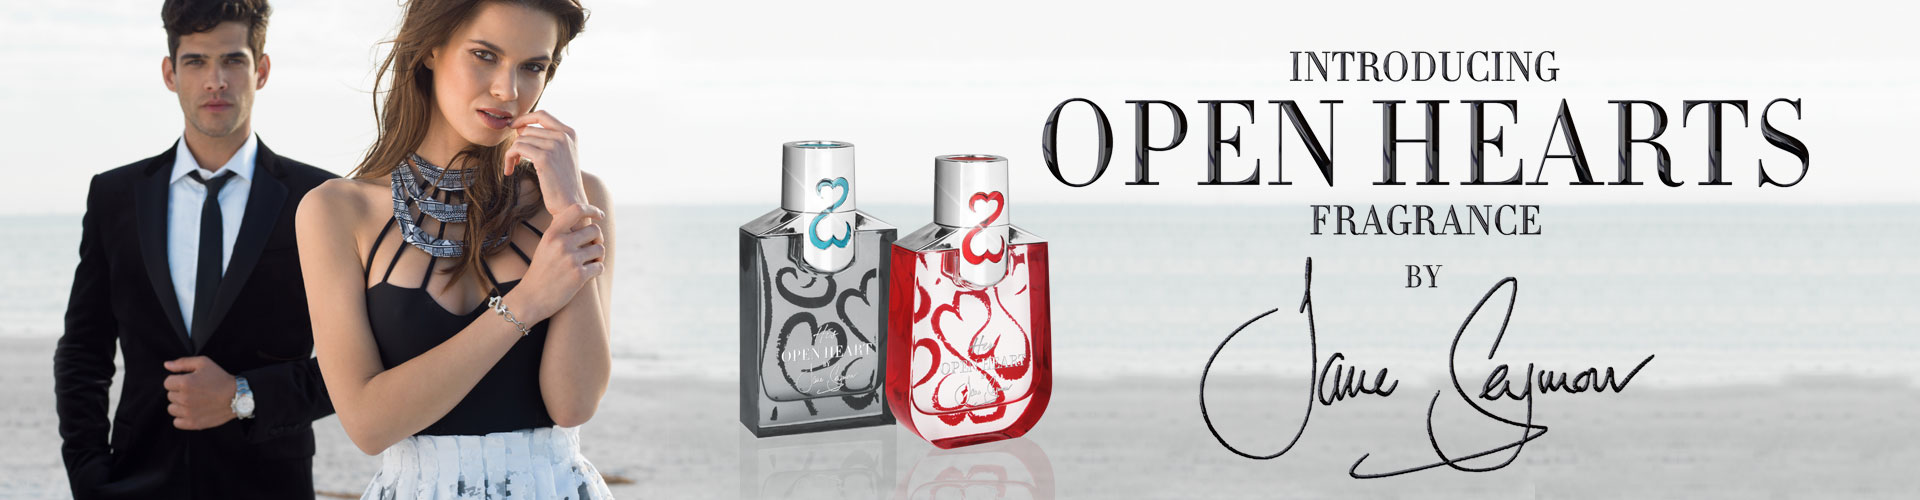 I'm very excited to introduce my new Open Hearts Fragrance Collection available on HSN, READ MORE ON PEOPLE.COM.